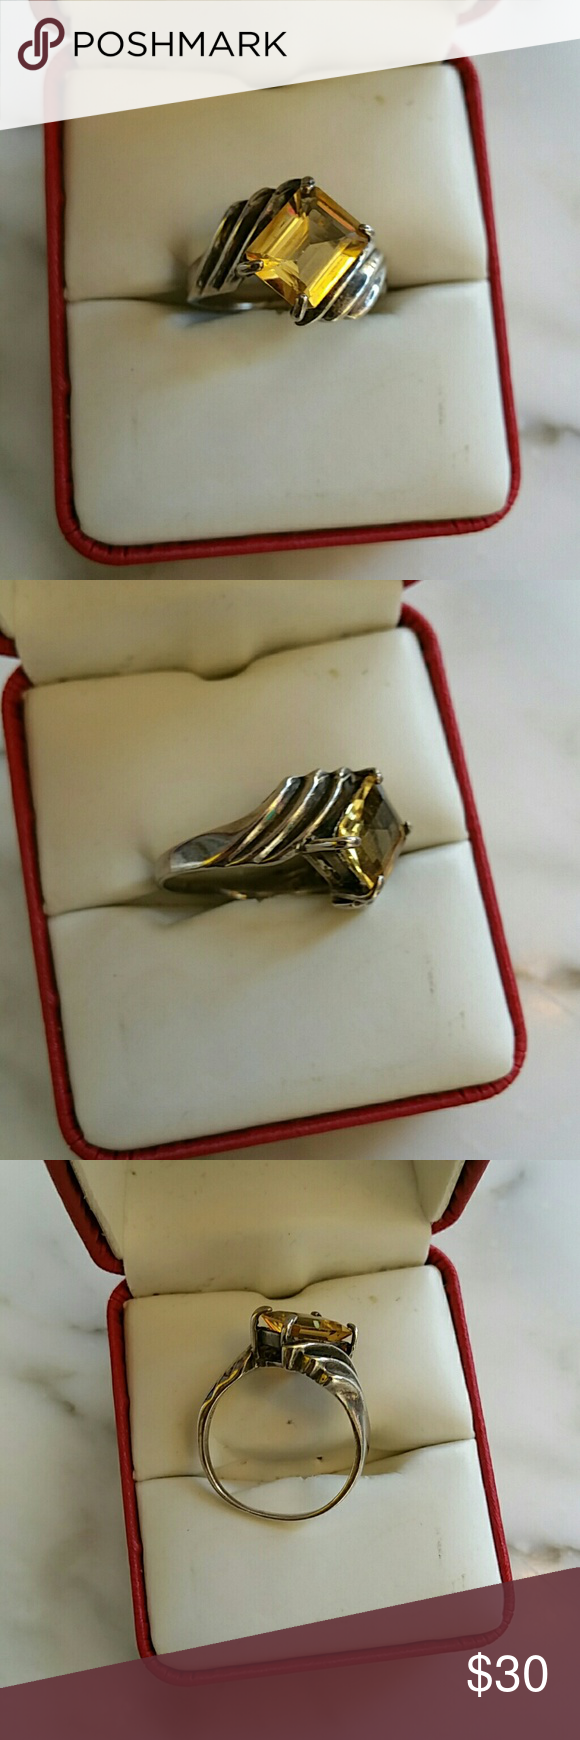 Sterling Silver Citrine emerald cut ring. Size 8.5 Twisted sterling .925 setting w/approxn 1.25ctw emerald cut citrine stone. Size 8.5 sterling silver  Jewelry Rings